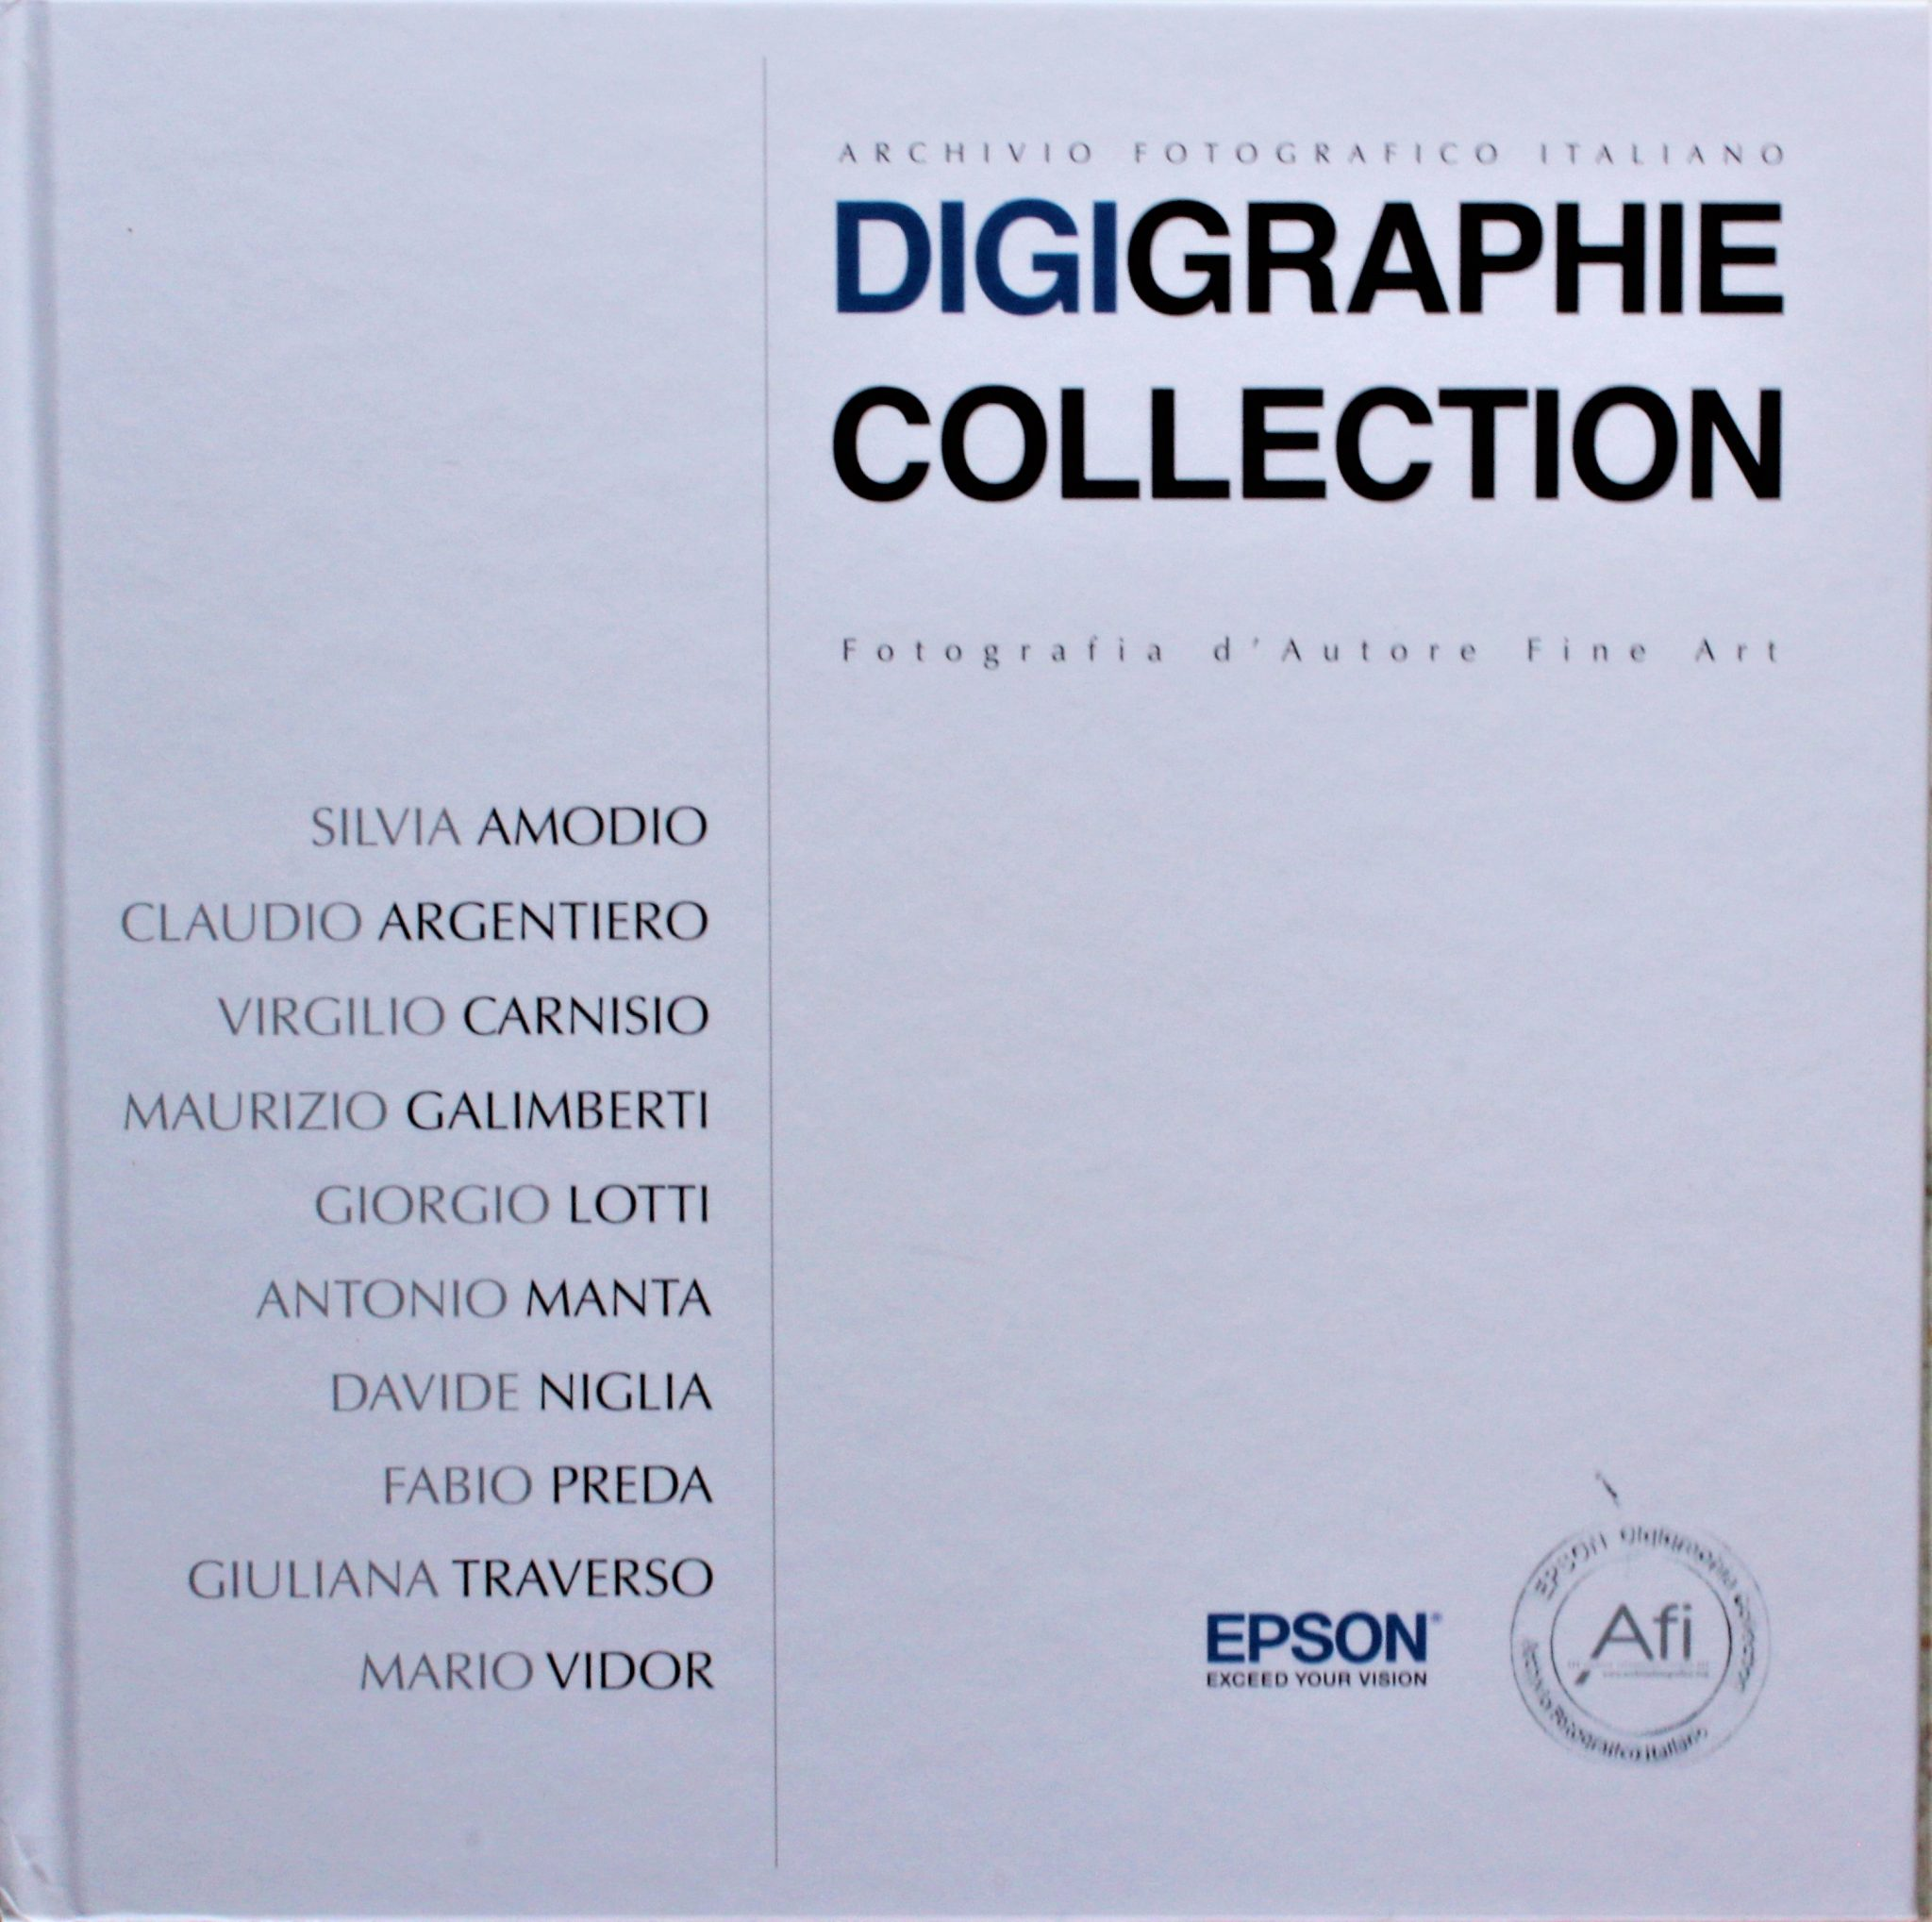 Digigraphie Collection